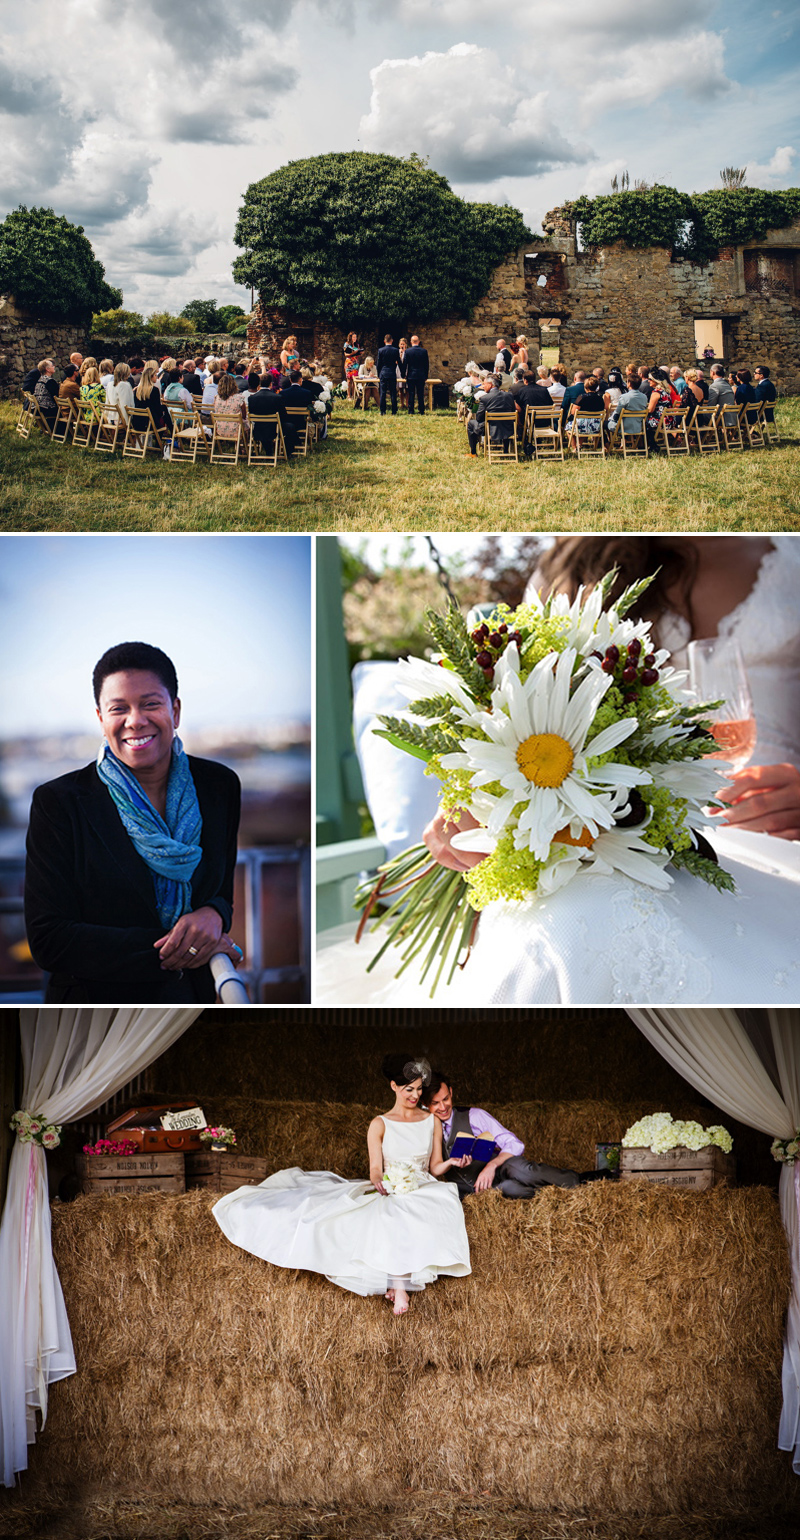 wedding-planning-west-midlands-benessamy-weddings-and-events-loved-by-coco-coco-wedding-venues-matt-brown-photography-layer-2